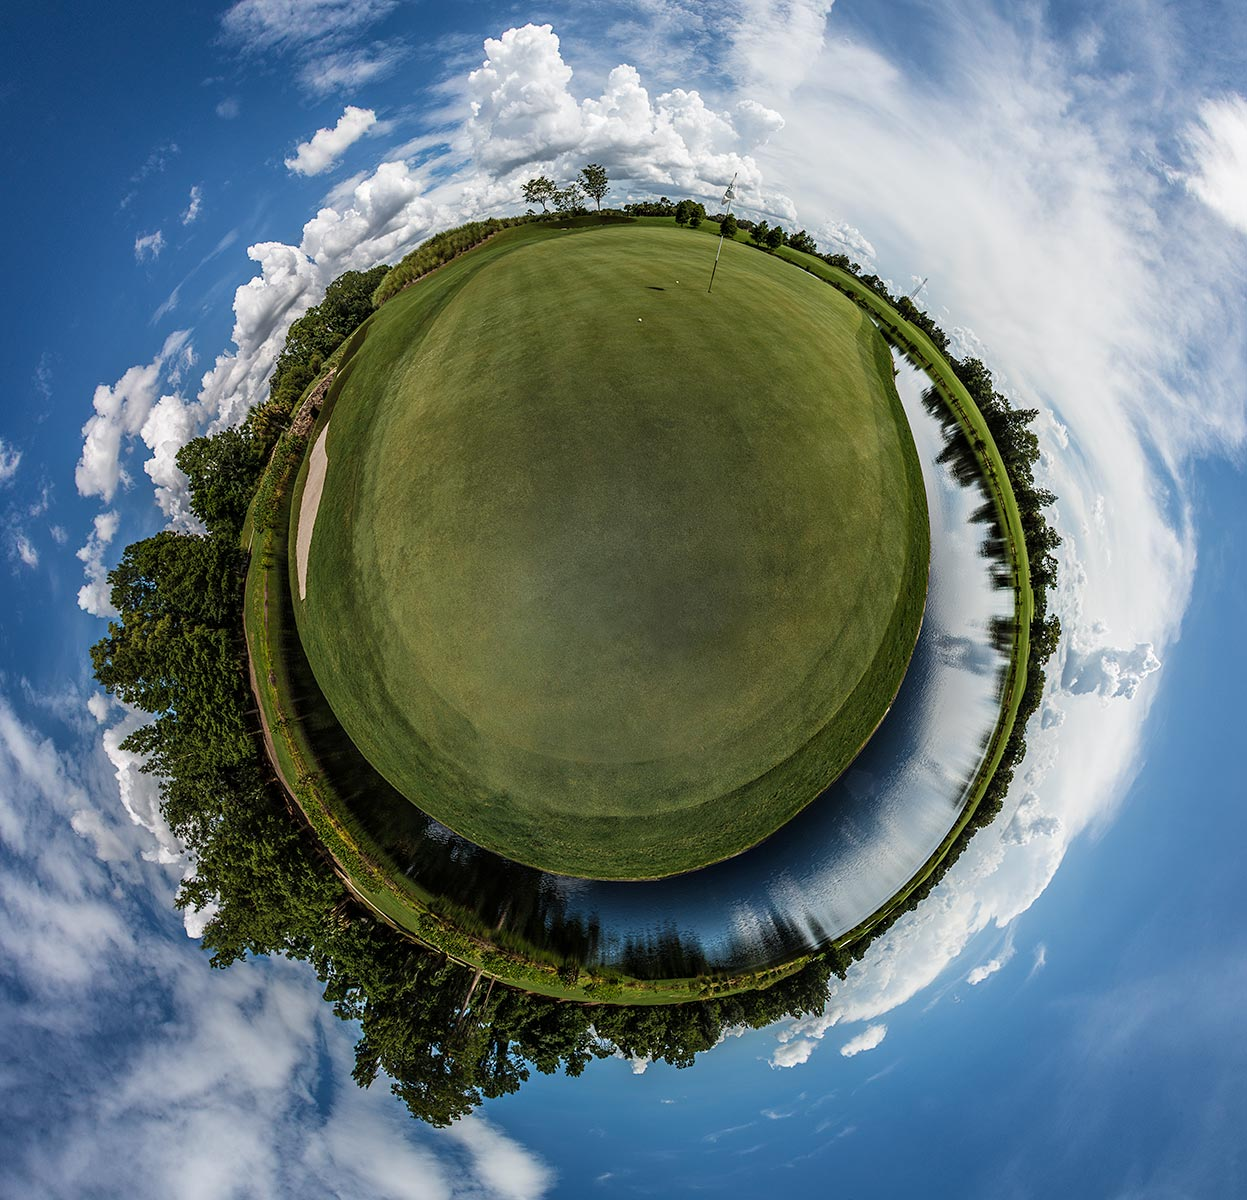 Interlachen-Little-Planet.jpg